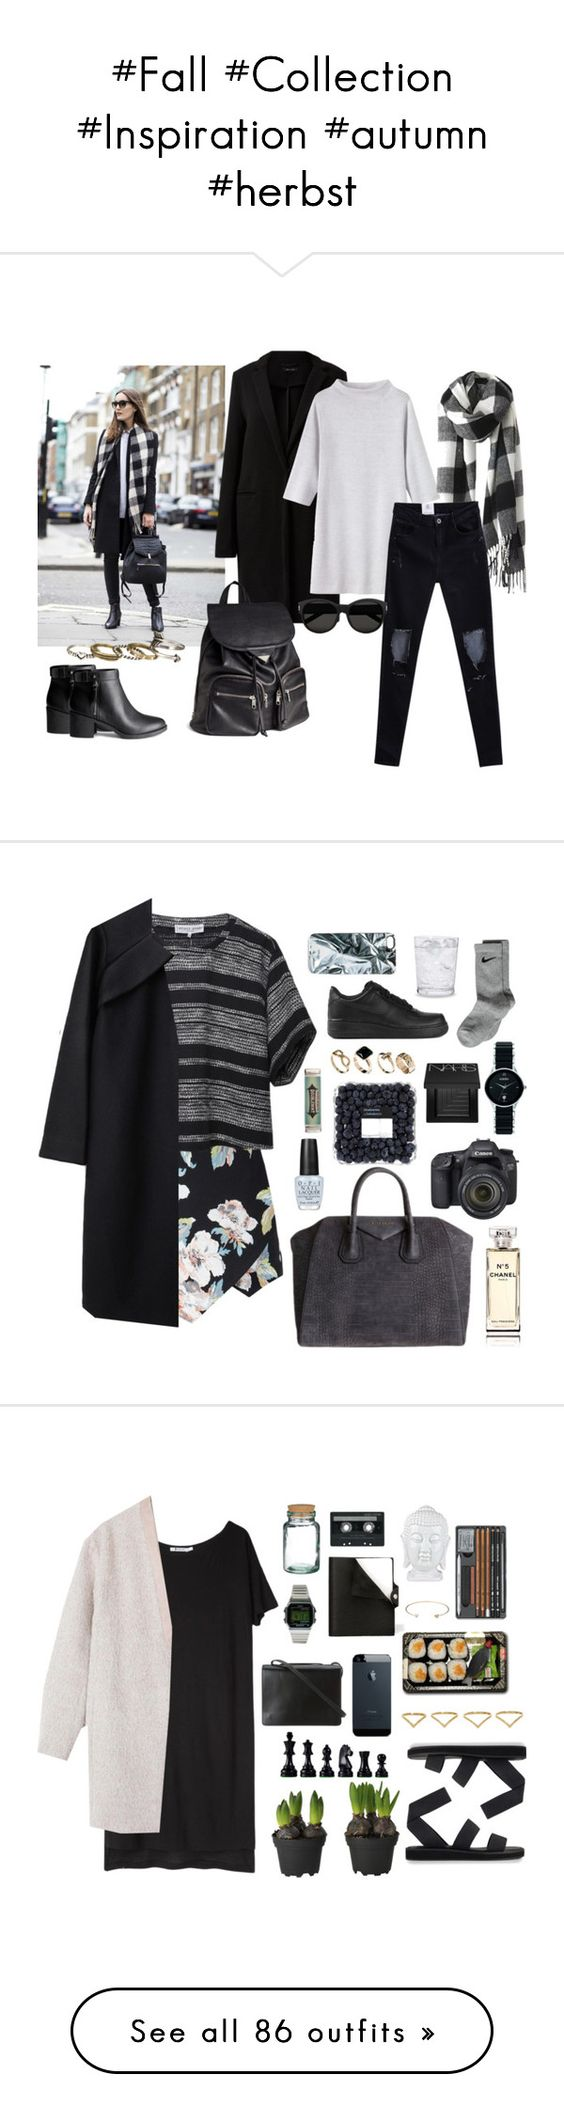 """""""#Fall #Collection #Inspiration #autumn #herbst"""" by itsmytimetoshinecoco ❤ liked on Polyvore featuring Toast, H&M, Yves Saint Laurent, maurices, Apiece Apart, A Détacher, Givenchy, Eos, OPI and NIKE"""